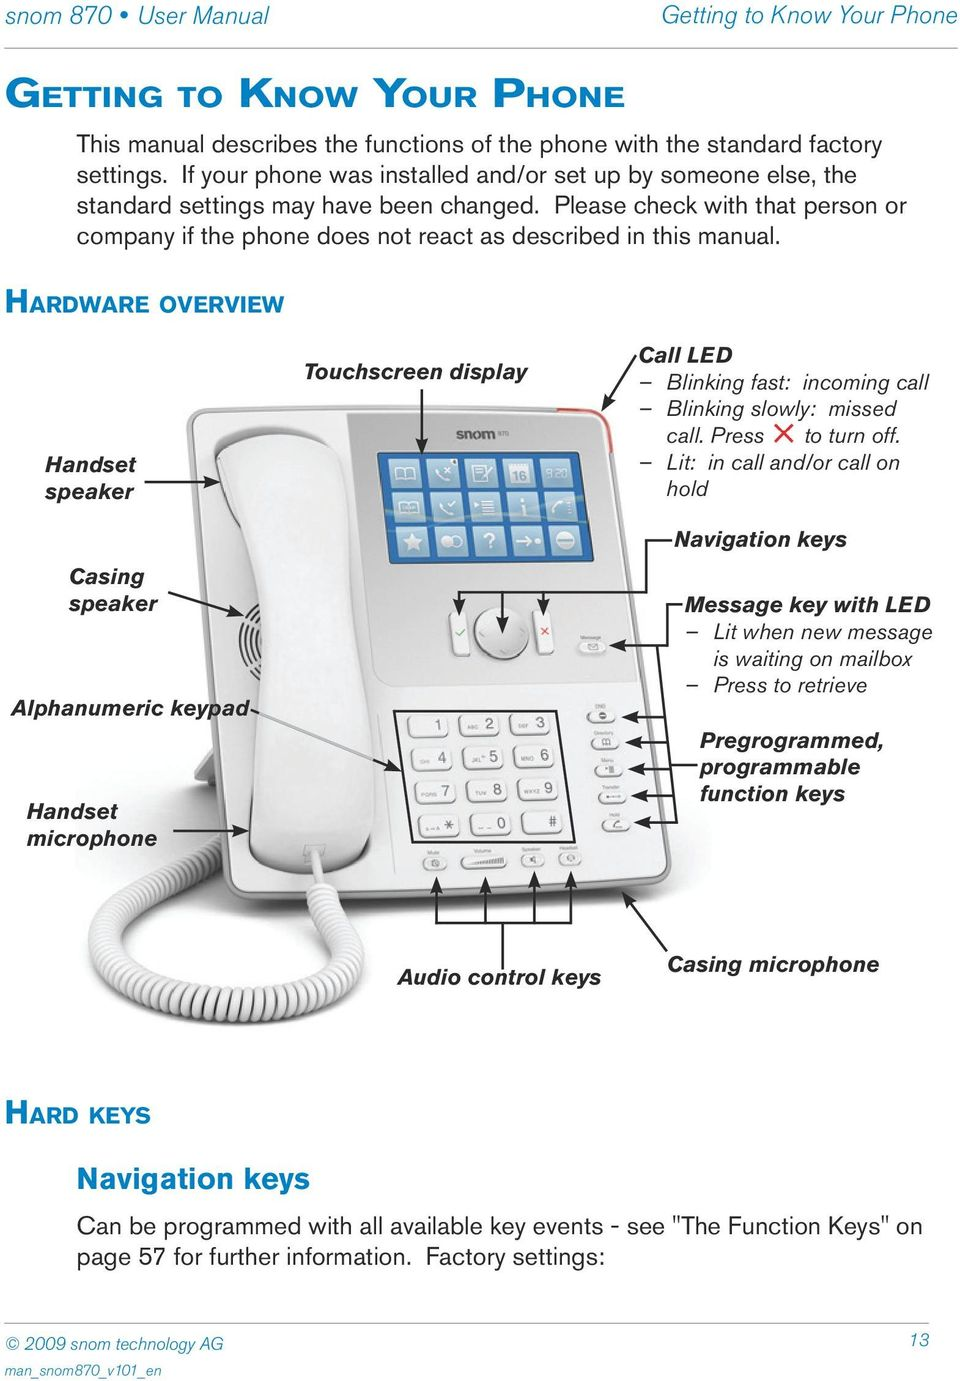 Please check with that person or company if the phone does not react as described in this manual.